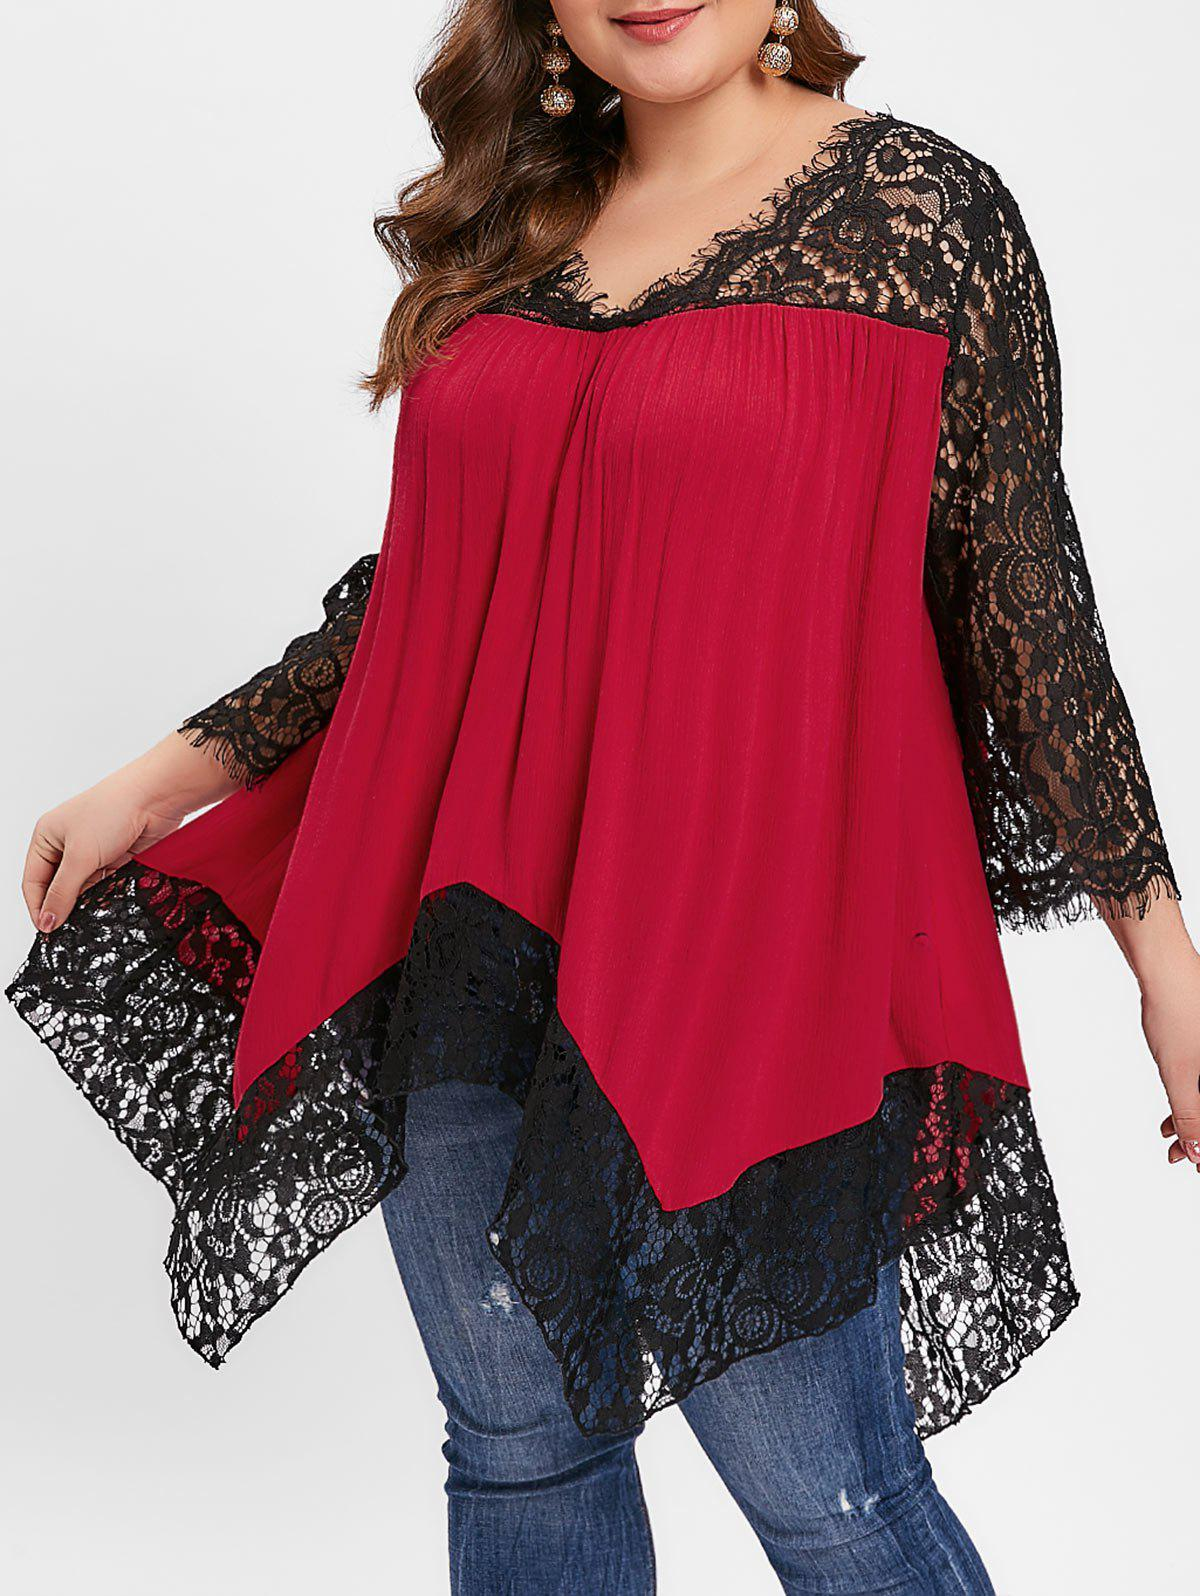 Floral Lace Insert Asymmetrical Plus Size Blouse - RED WINE 2X